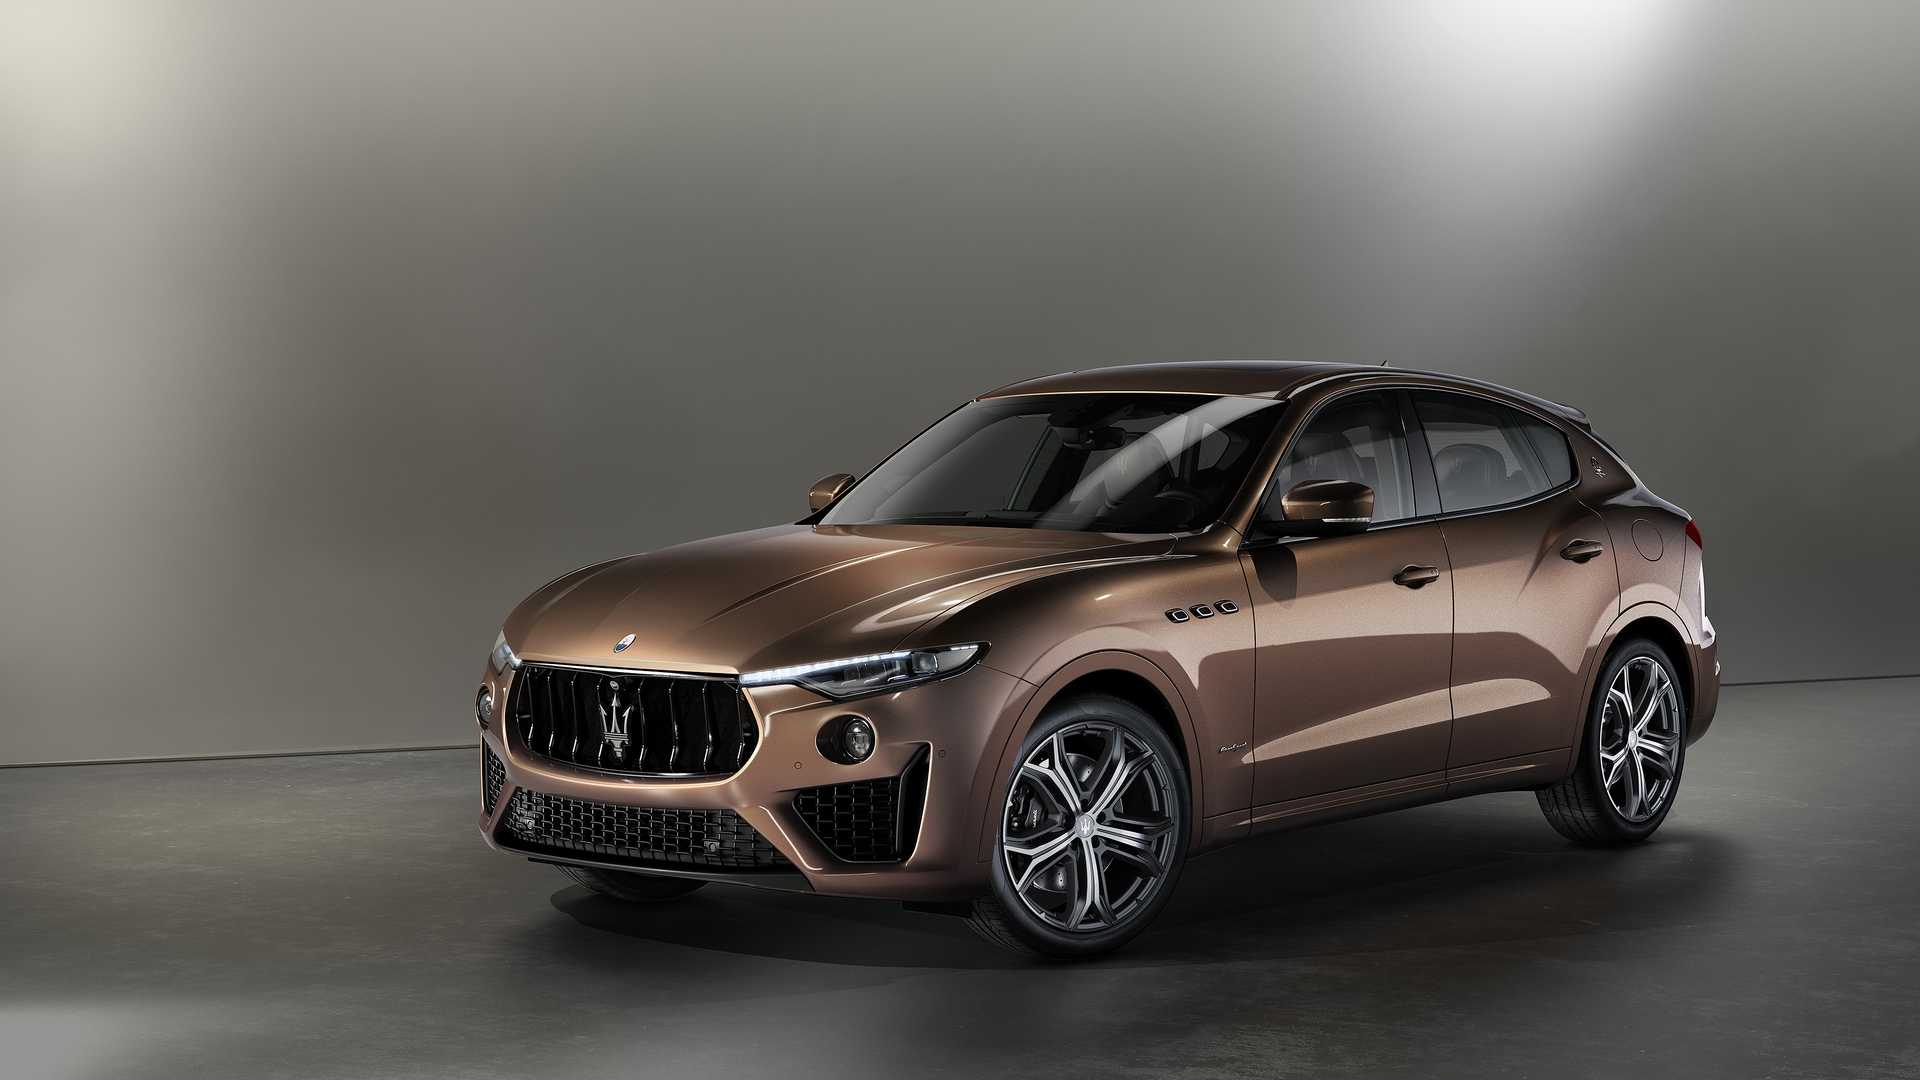 Luxury carmaker Maserati will be unveiling exclusive editions of its Quattroporte sedan/saloon and Levante SUV at the Monterey Car Week kicking off on August 14, 2019. Each one will emerge next spring in a series of 50, and the prices remain unannounced.